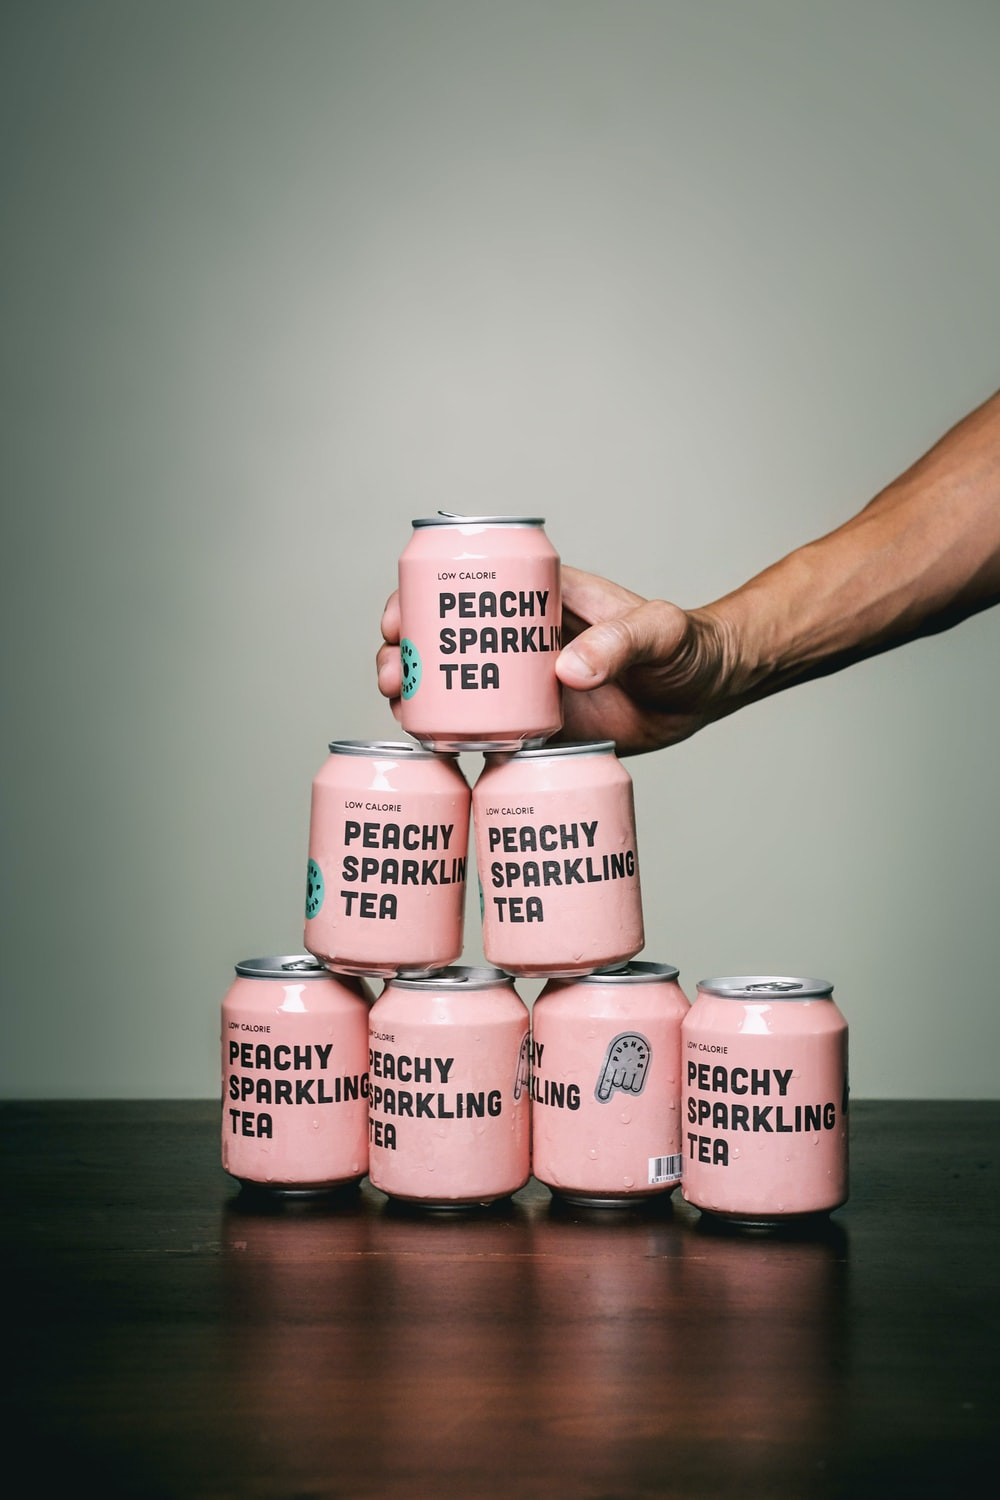 person holding pink and white labeled bottle